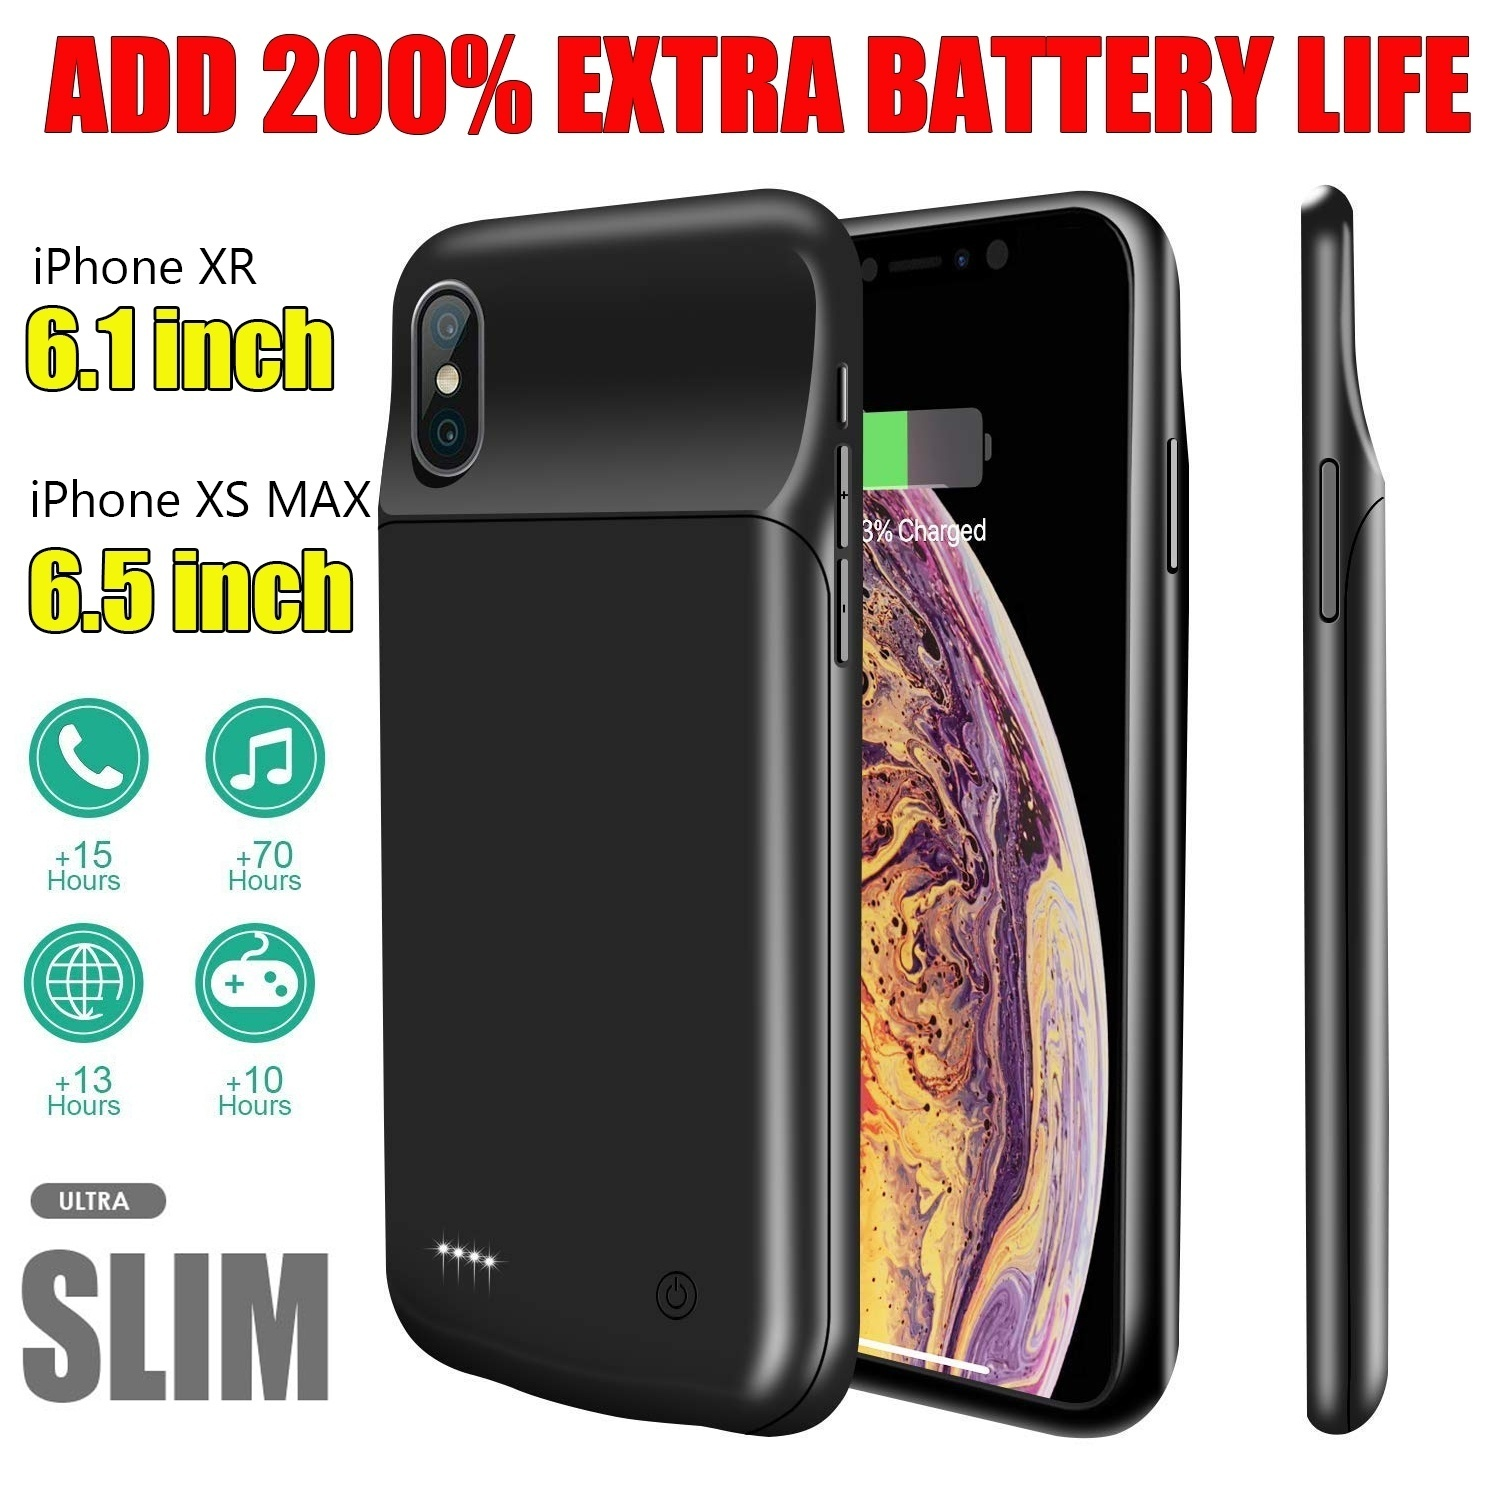 Battery Silicone Charger Case <font><b>4000mAh</b></font> 6500mAh for iPhone 11 Pro Max XR XS Max X 8 7 6 6S plus Portable <font><b>Power</b></font> <font><b>Bank</b></font> Cover image